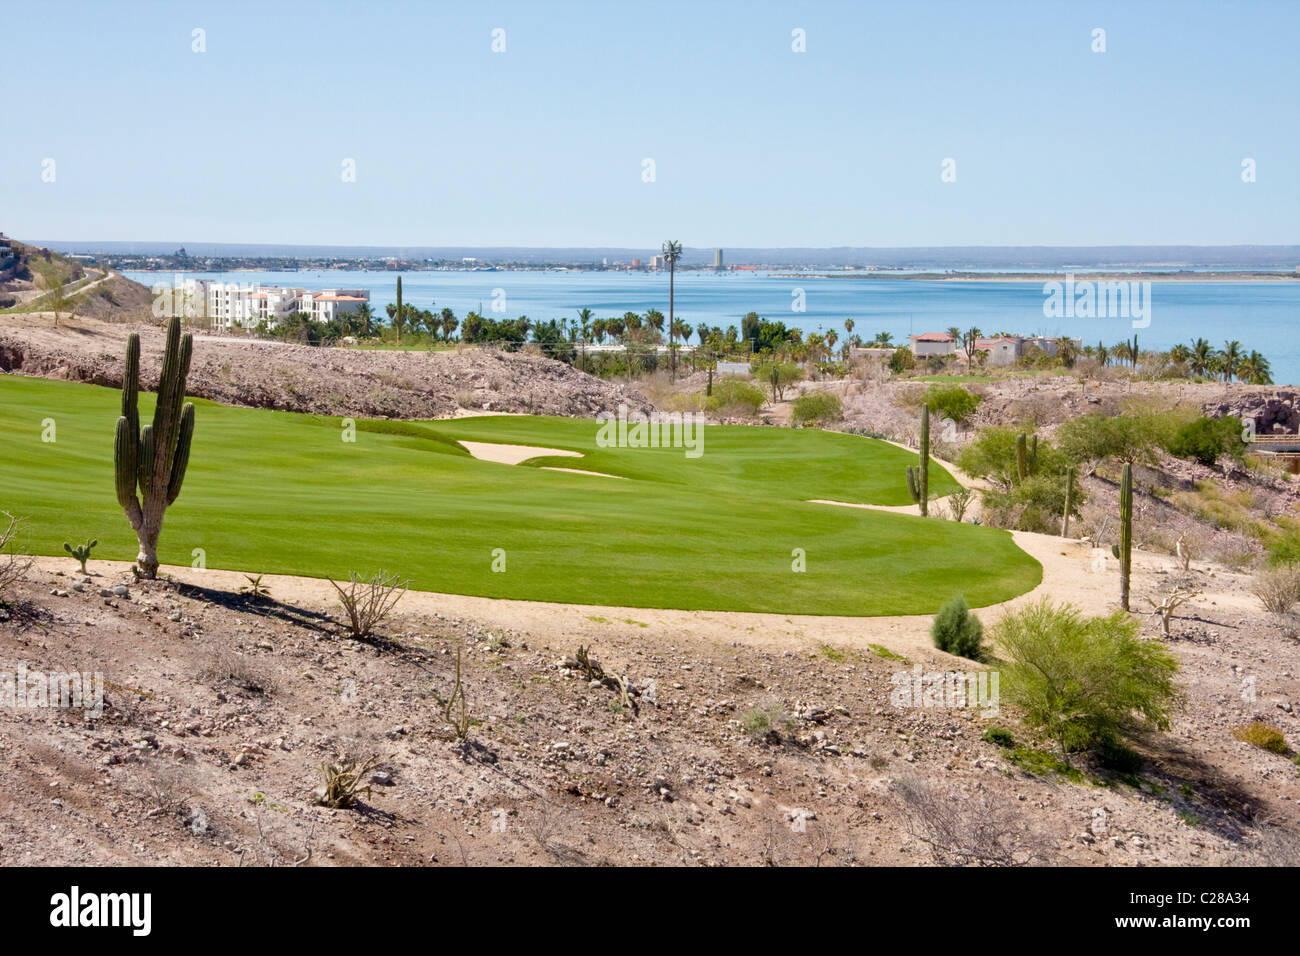 Mexico's first Gary Player golf course, Costa Baja Resort, La Paz, Baja Sur, Mexico. - Stock Image